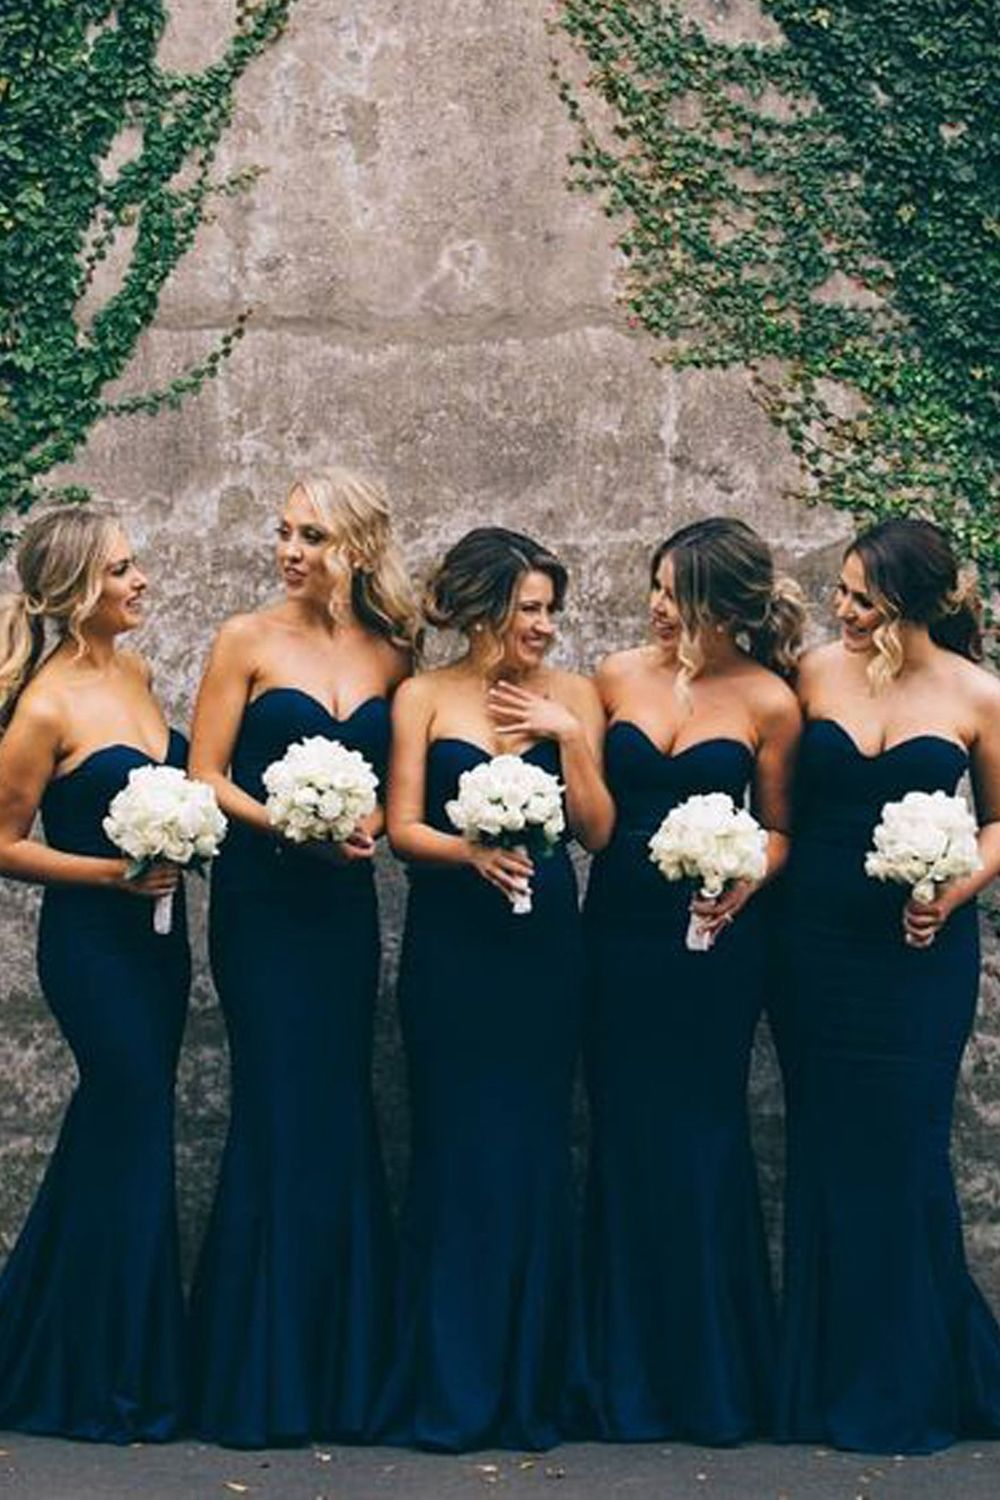 0e2673f34f4 Mermaid Sweetheart Navy Blue Long Bridesmaid Dresses Wedding Party Dresses  BD010322